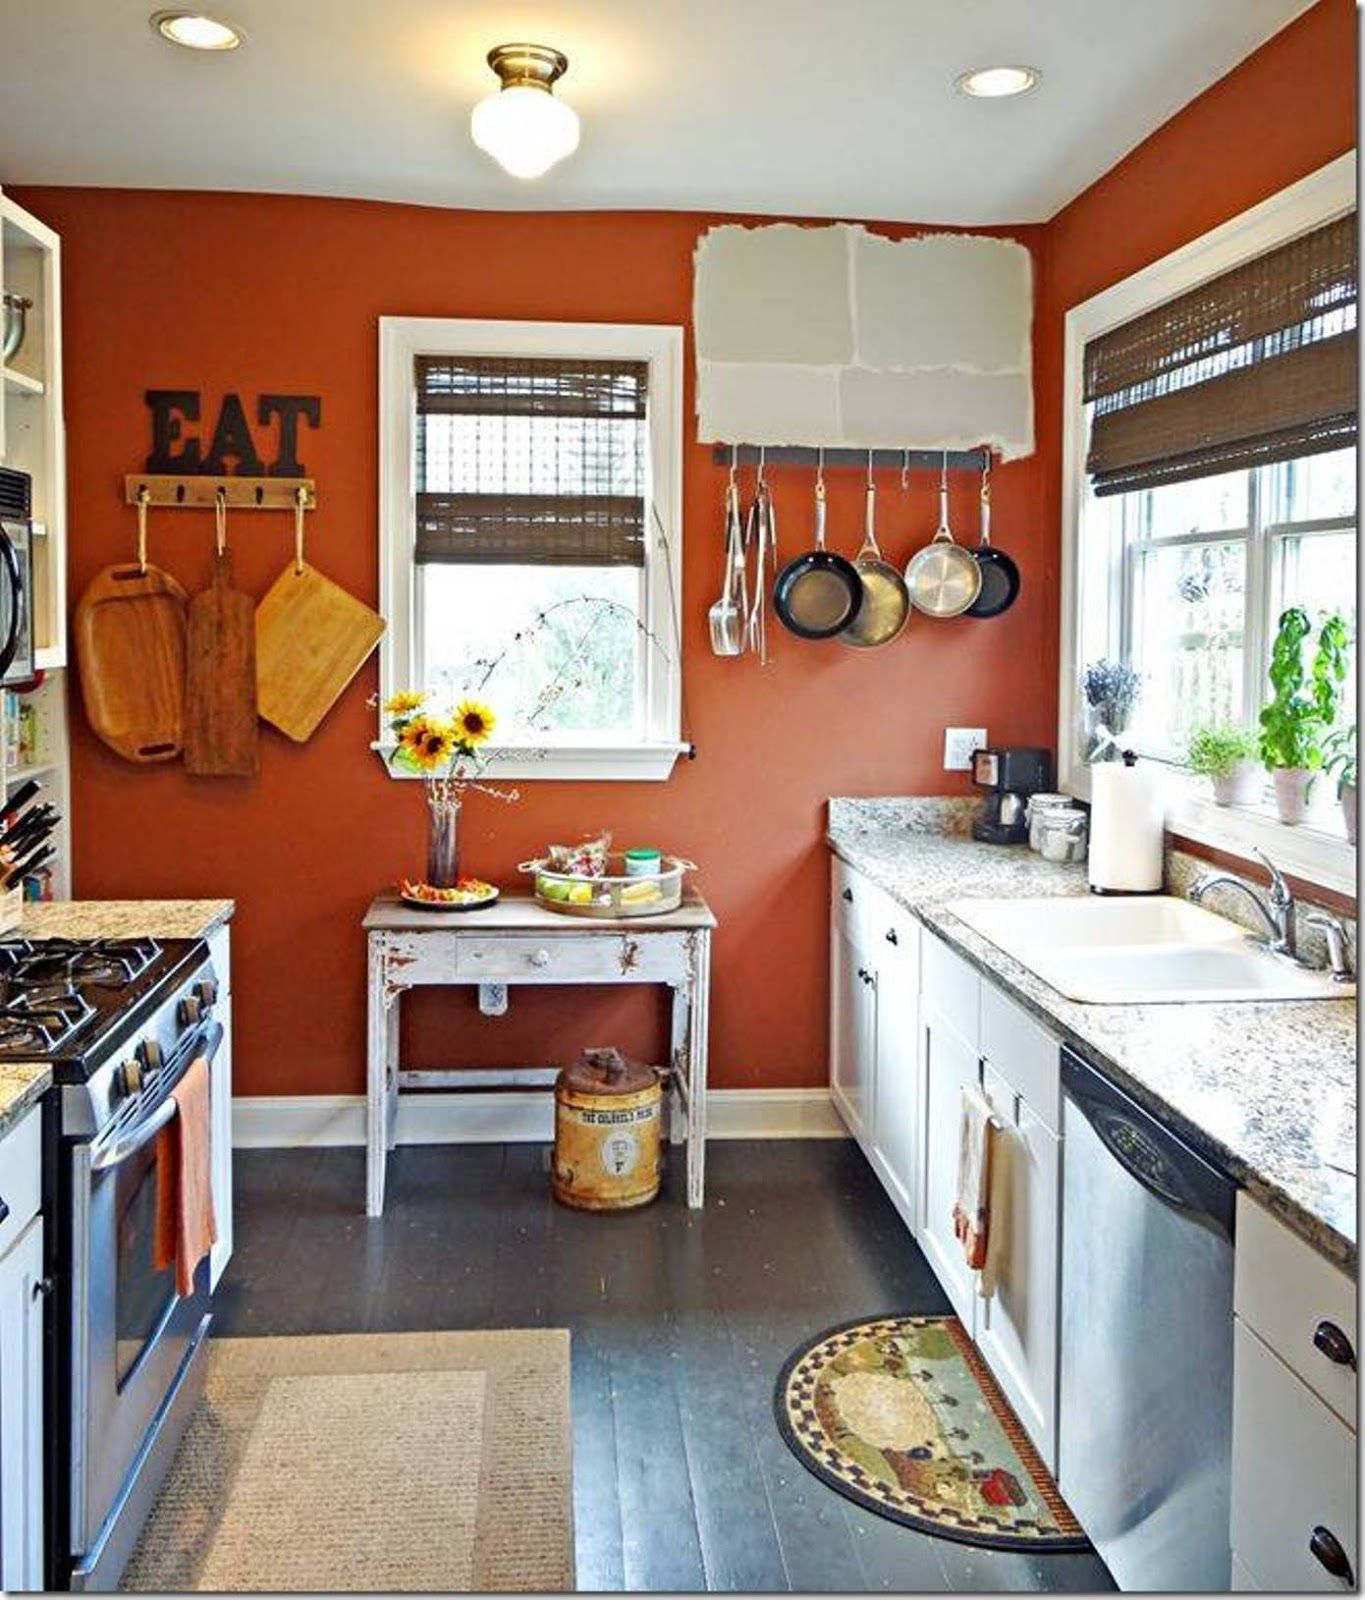 Awesome 110 Burnt Orange Kitchen Decor Ideas With Images